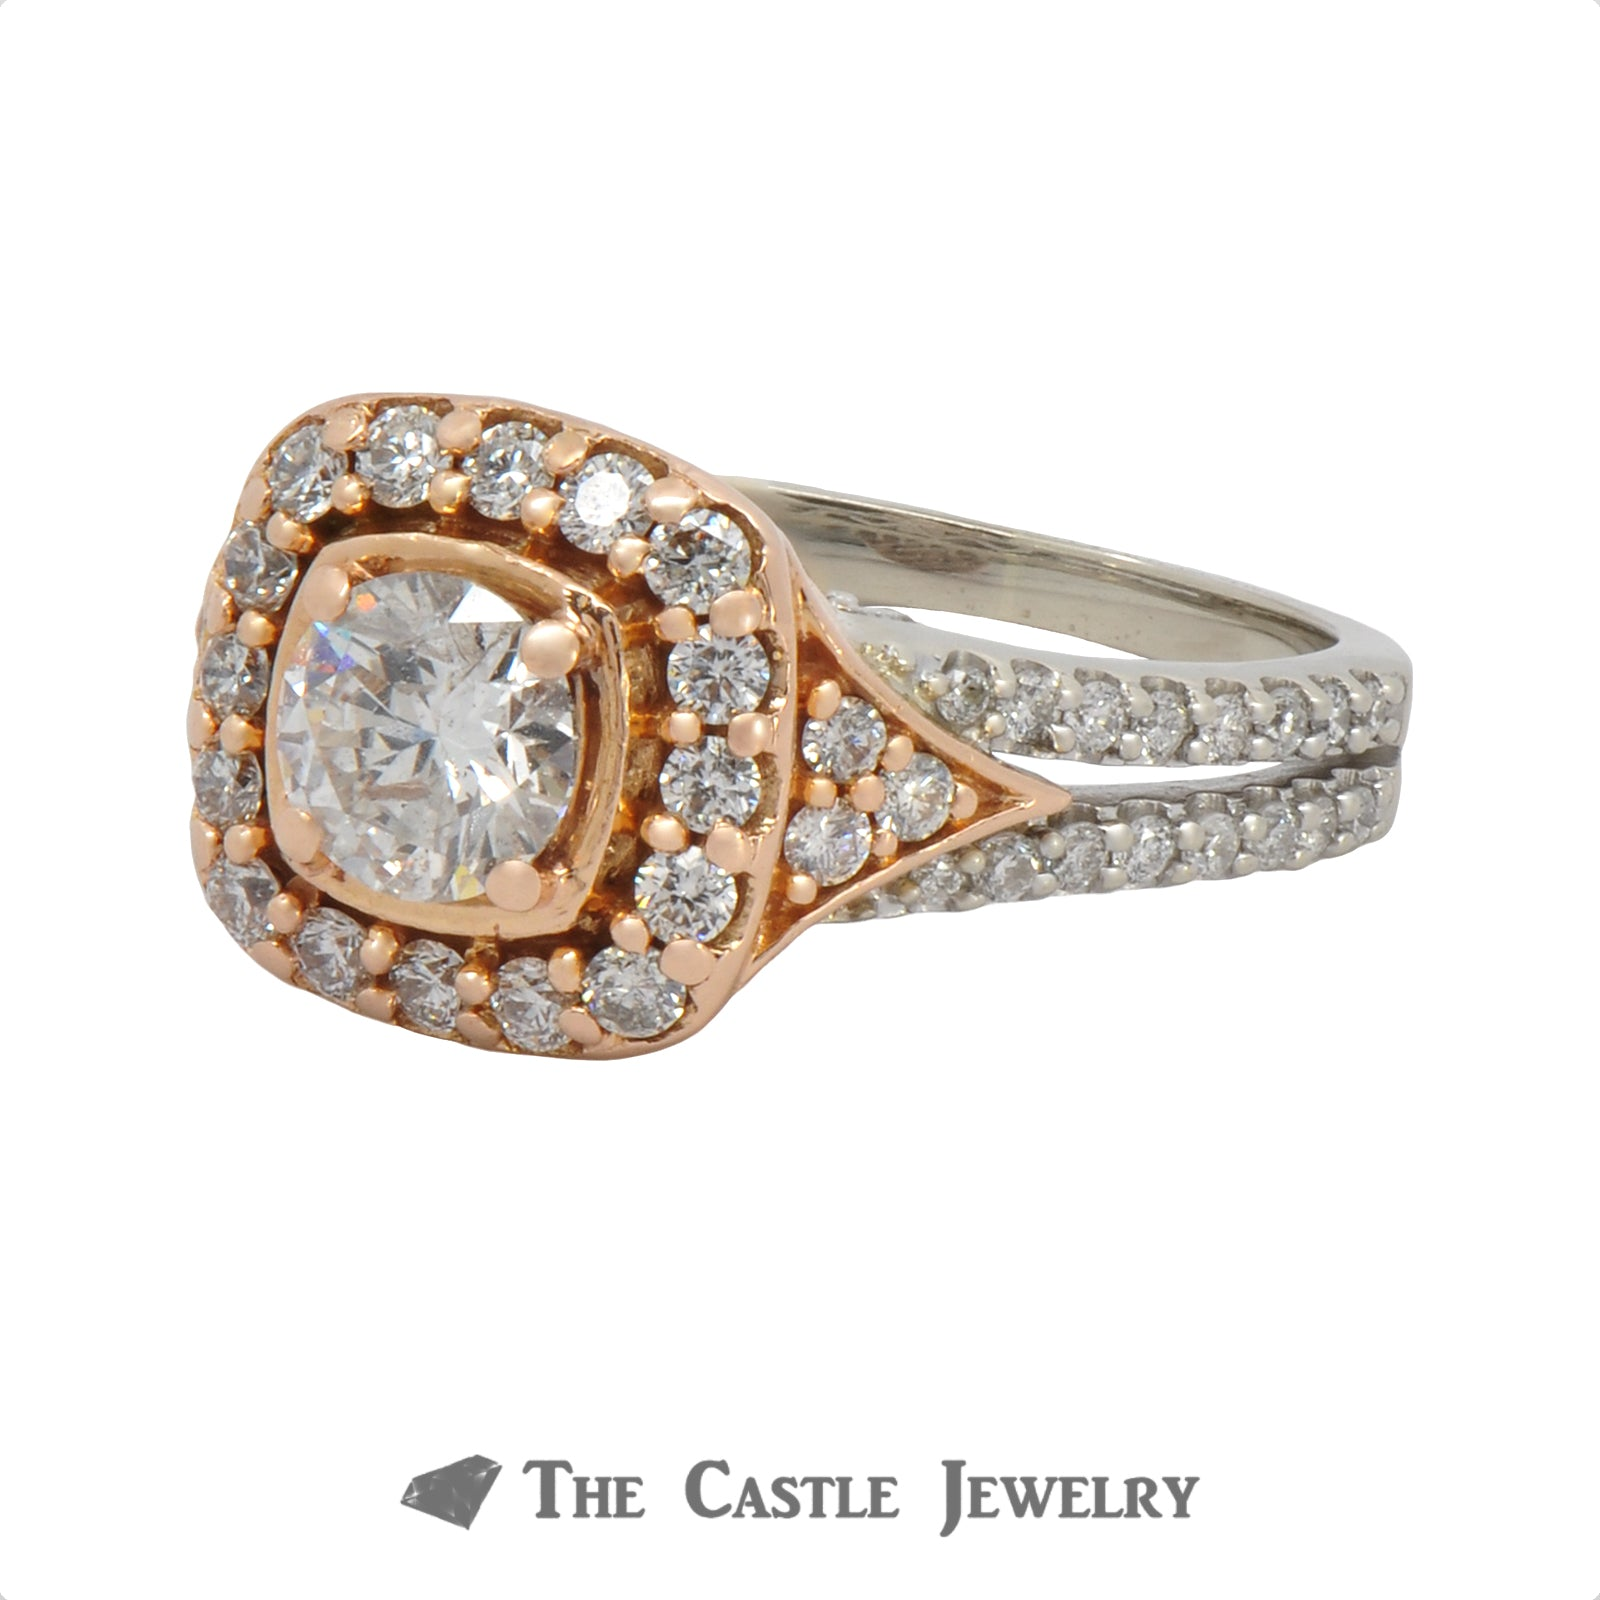 1.25cttw Diamond Engagement Ring with Halo & Accents In 14K Rose And White Gold-1